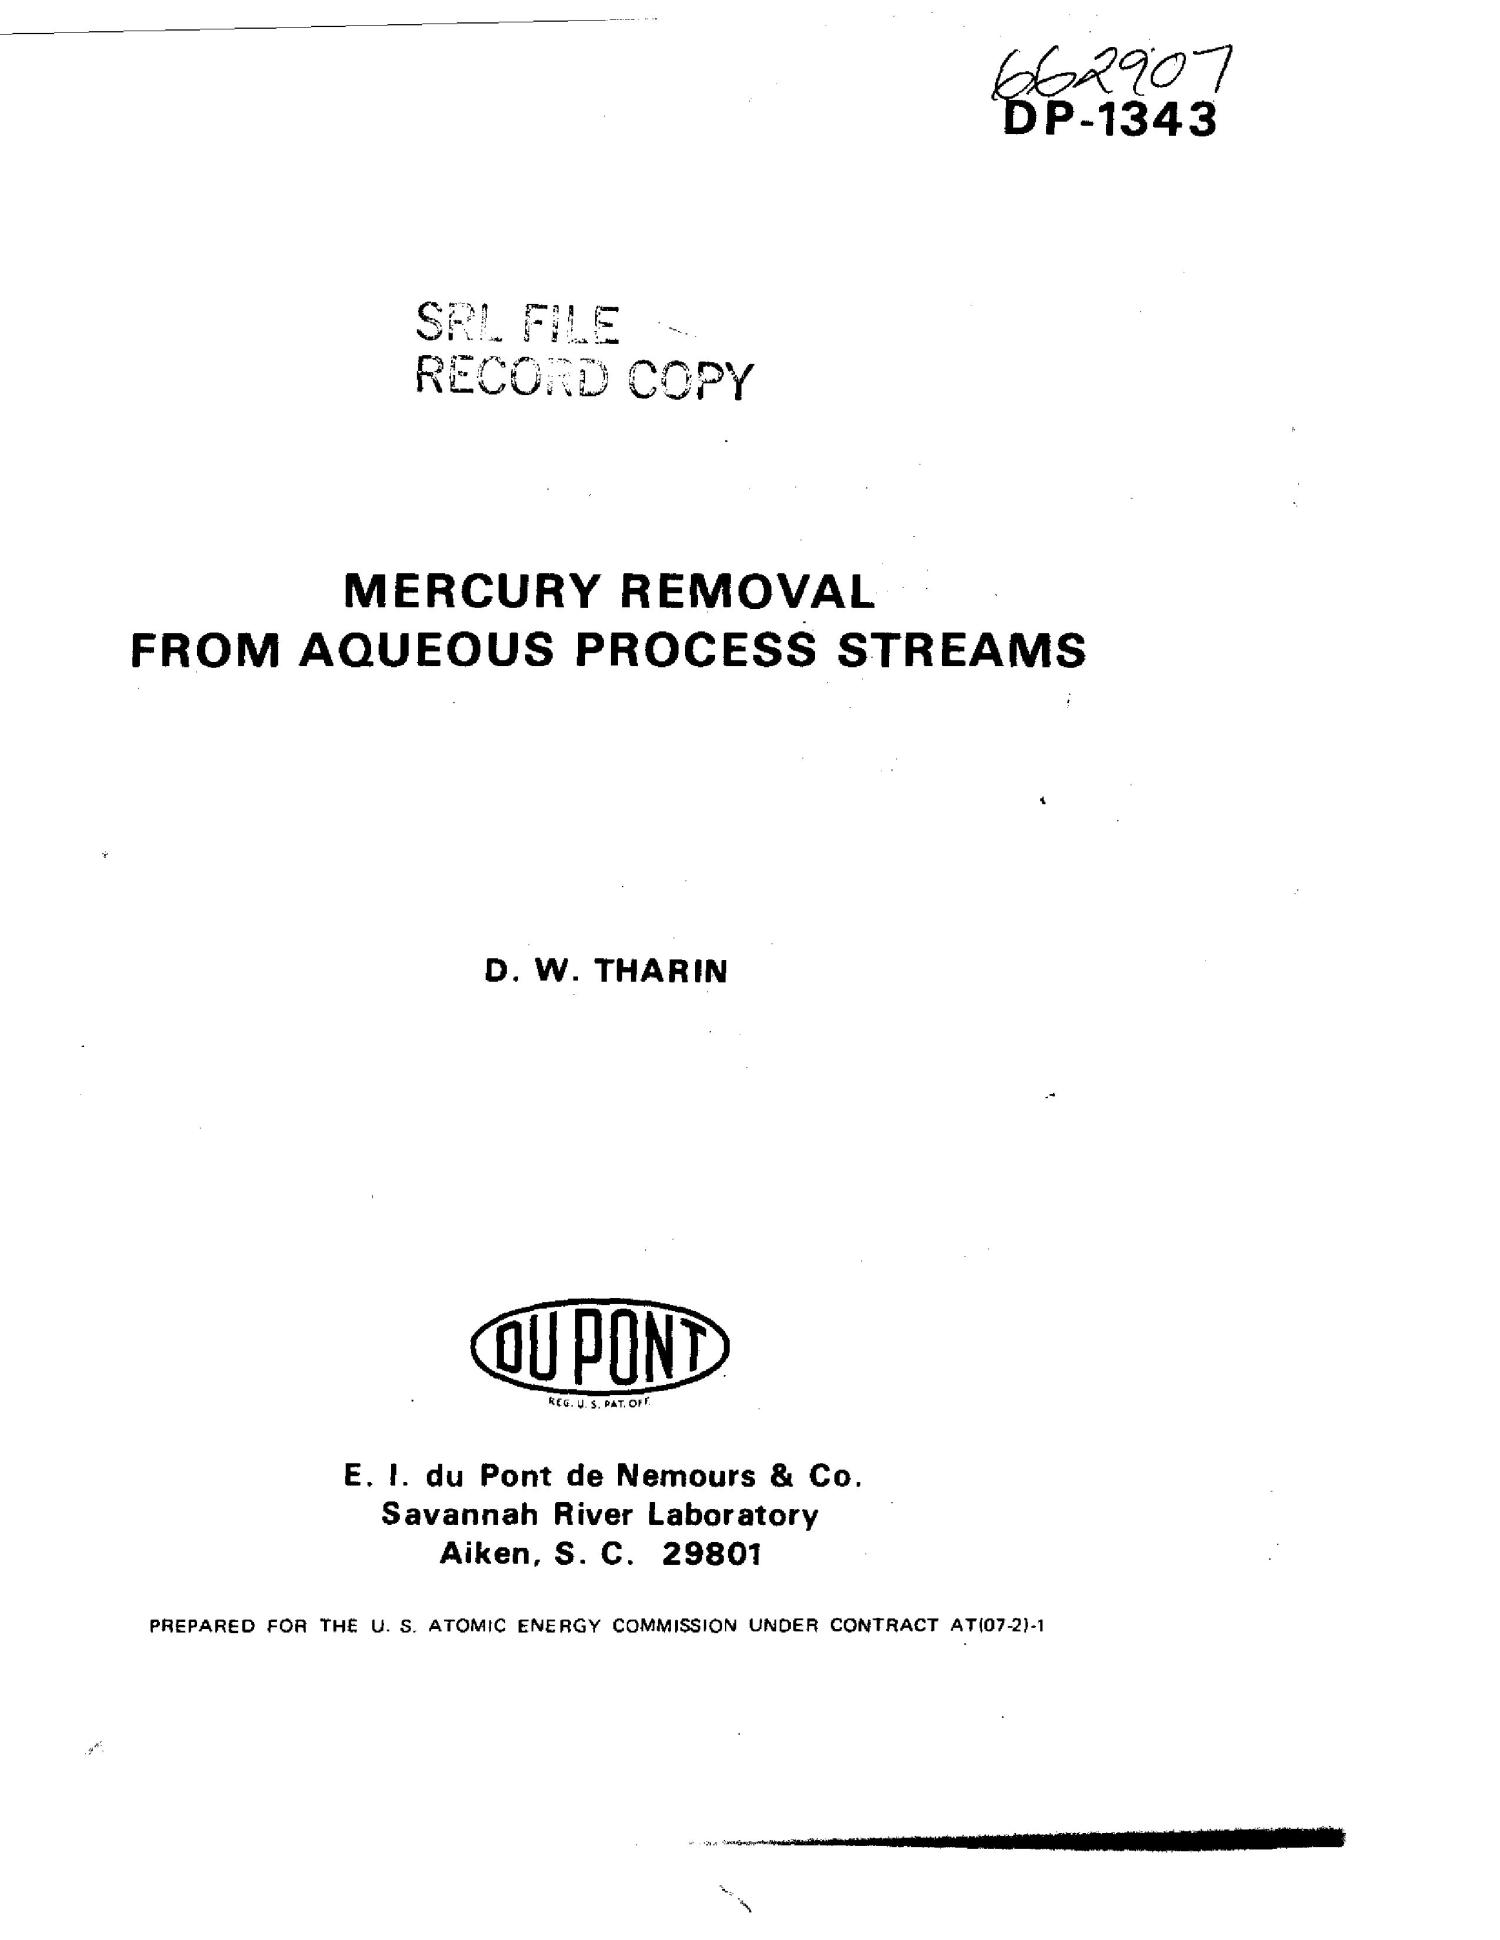 Mercury removal from aqueous process streams                                                                                                      [Sequence #]: 1 of 24